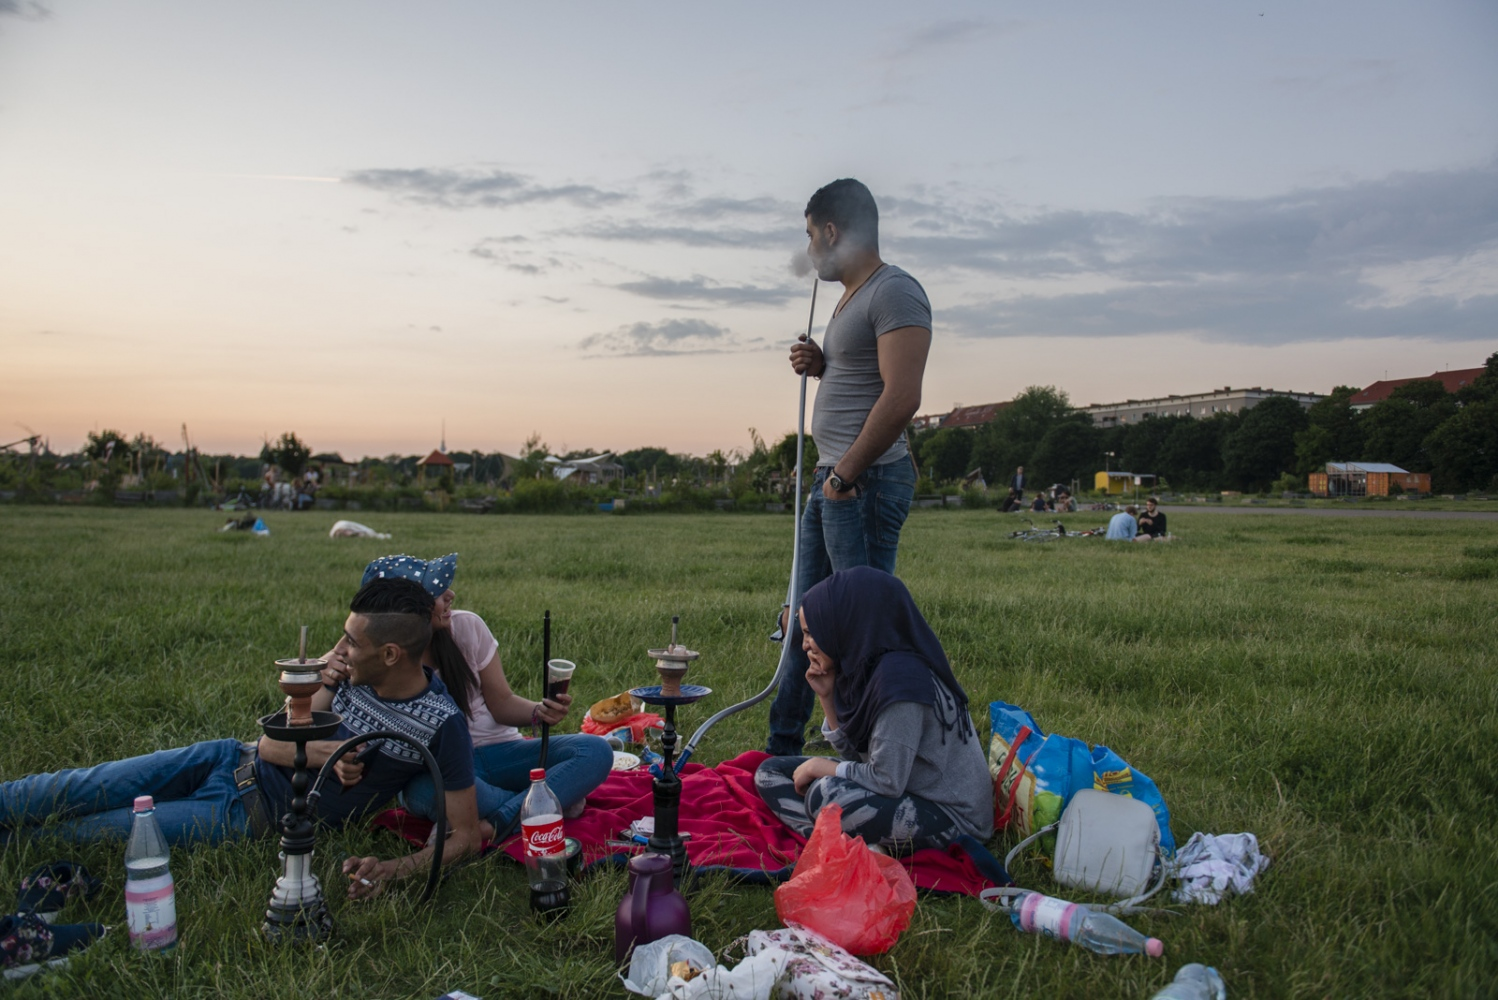 BERLIN| GERMANY | 2016-06-06 | Two Syrian couple spend their Sunday afternoon picnicking in Tempelhof, a vast great area that used to be the largest airport in europe during WWII. The space now hosts families and young people on warm days while one of the largest refugee camps in Berlin remains in the buildings of the airport.